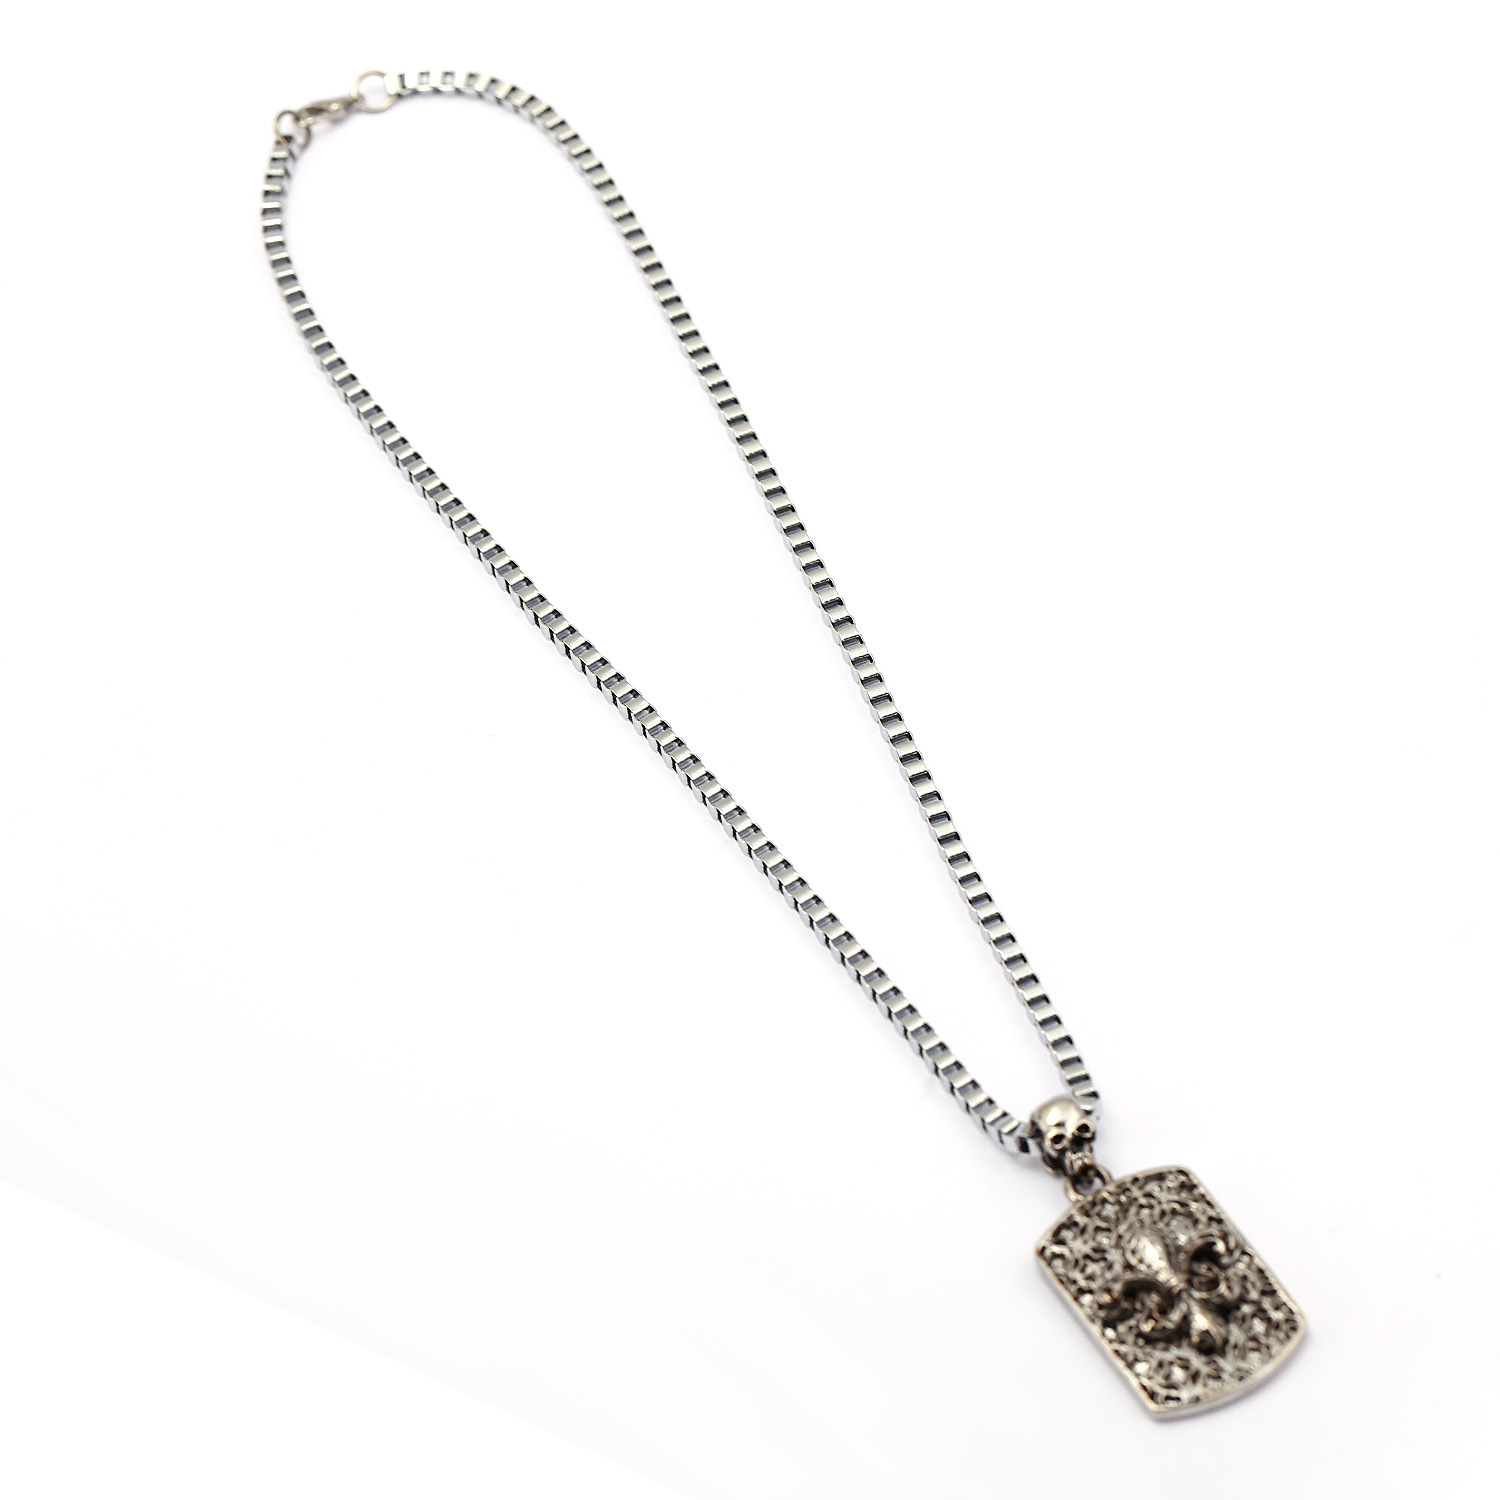 chrome hearts pendant sterling enlarged las products necklace dog tag vegas necklaces jewelry